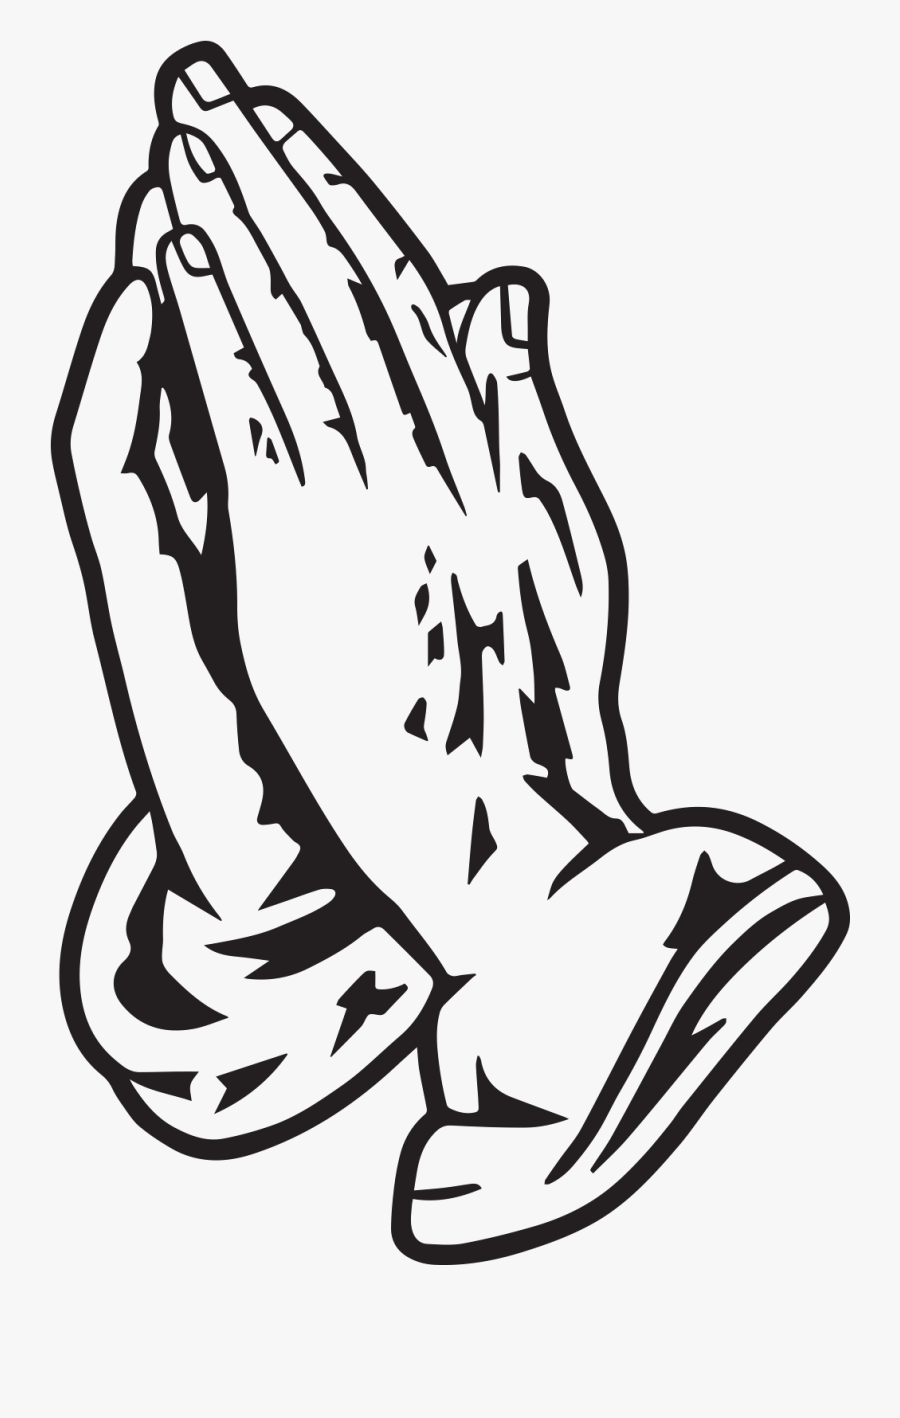 Pray Praying Hands Sticker By Victory Church - Praying Hands Stencil, Transparent Clipart